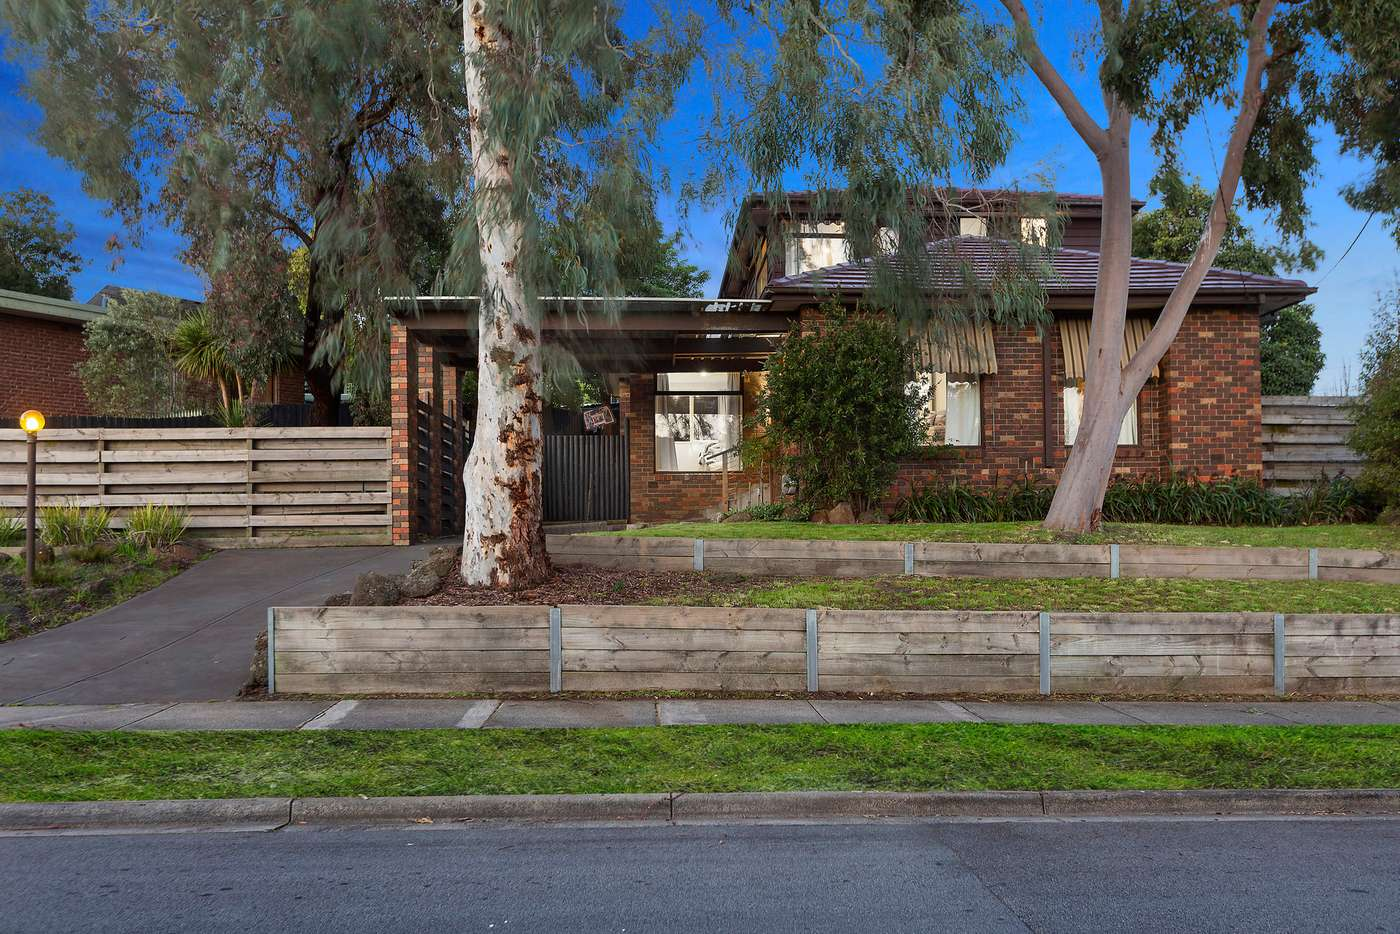 Main view of Homely house listing, 72 Blaxland Avenue, Frankston South VIC 3199